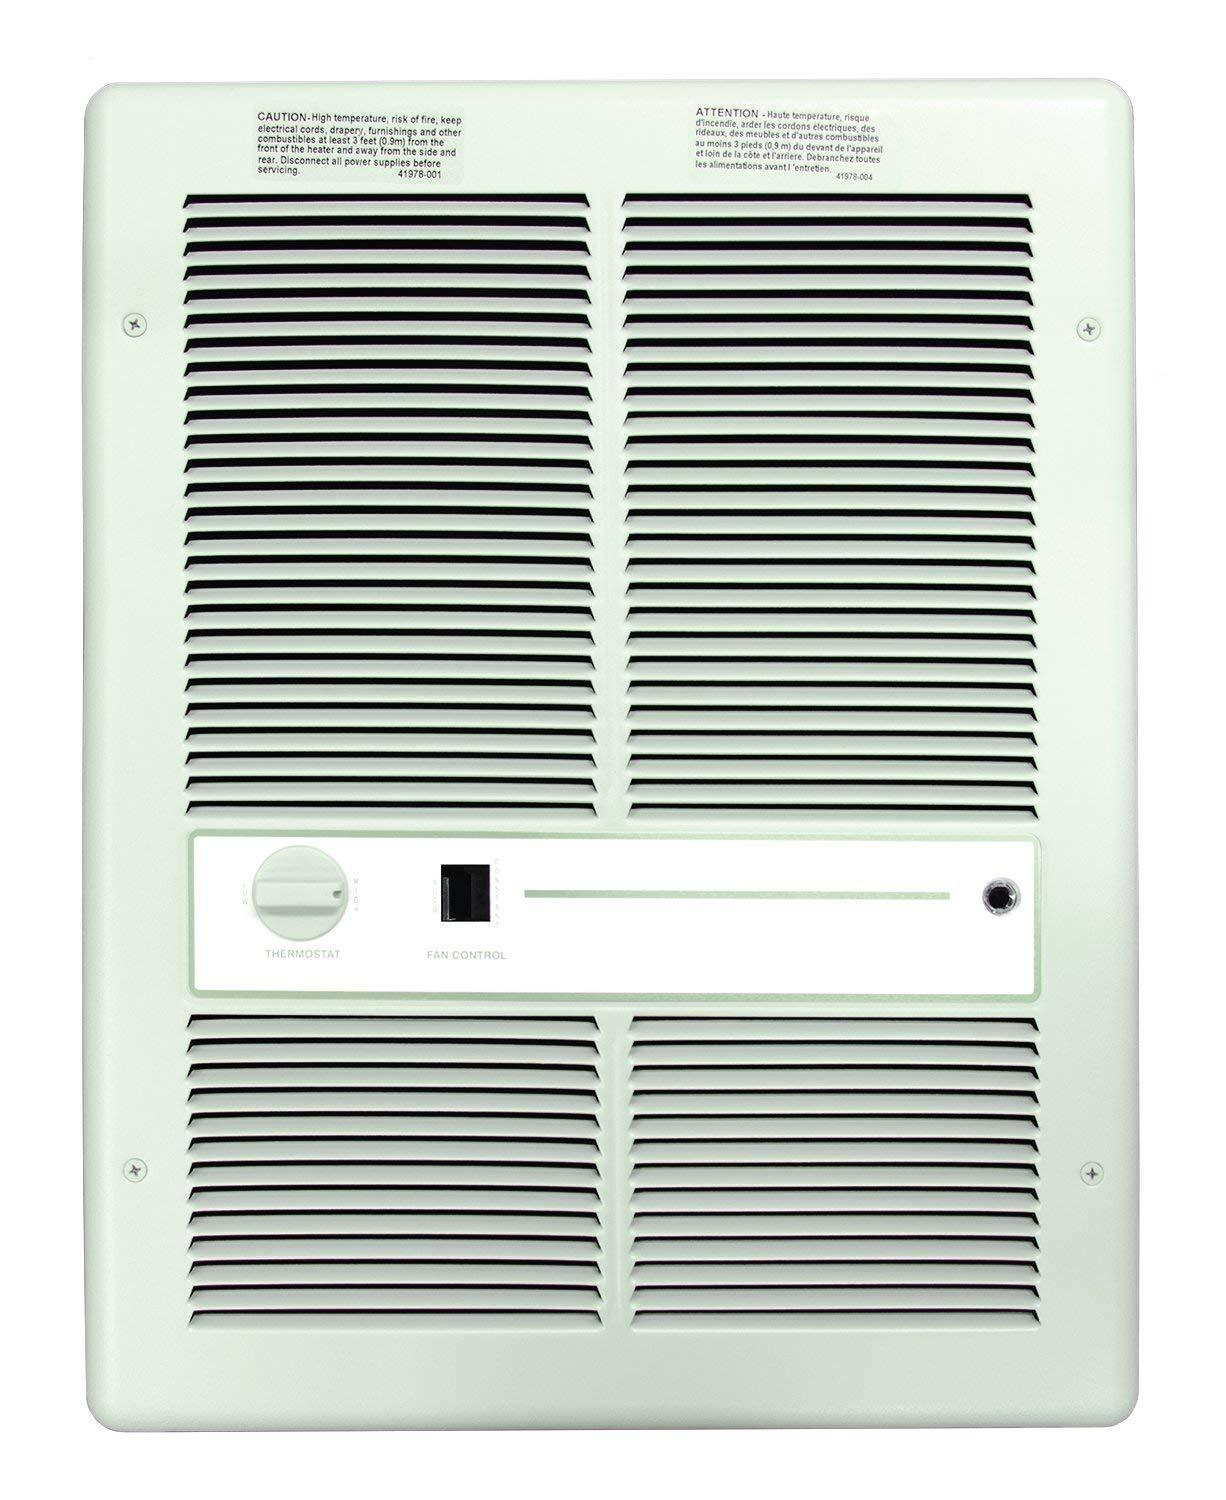 TPI- 4800W 208V Fan Forced Wall Heater White - F3317TSRPW